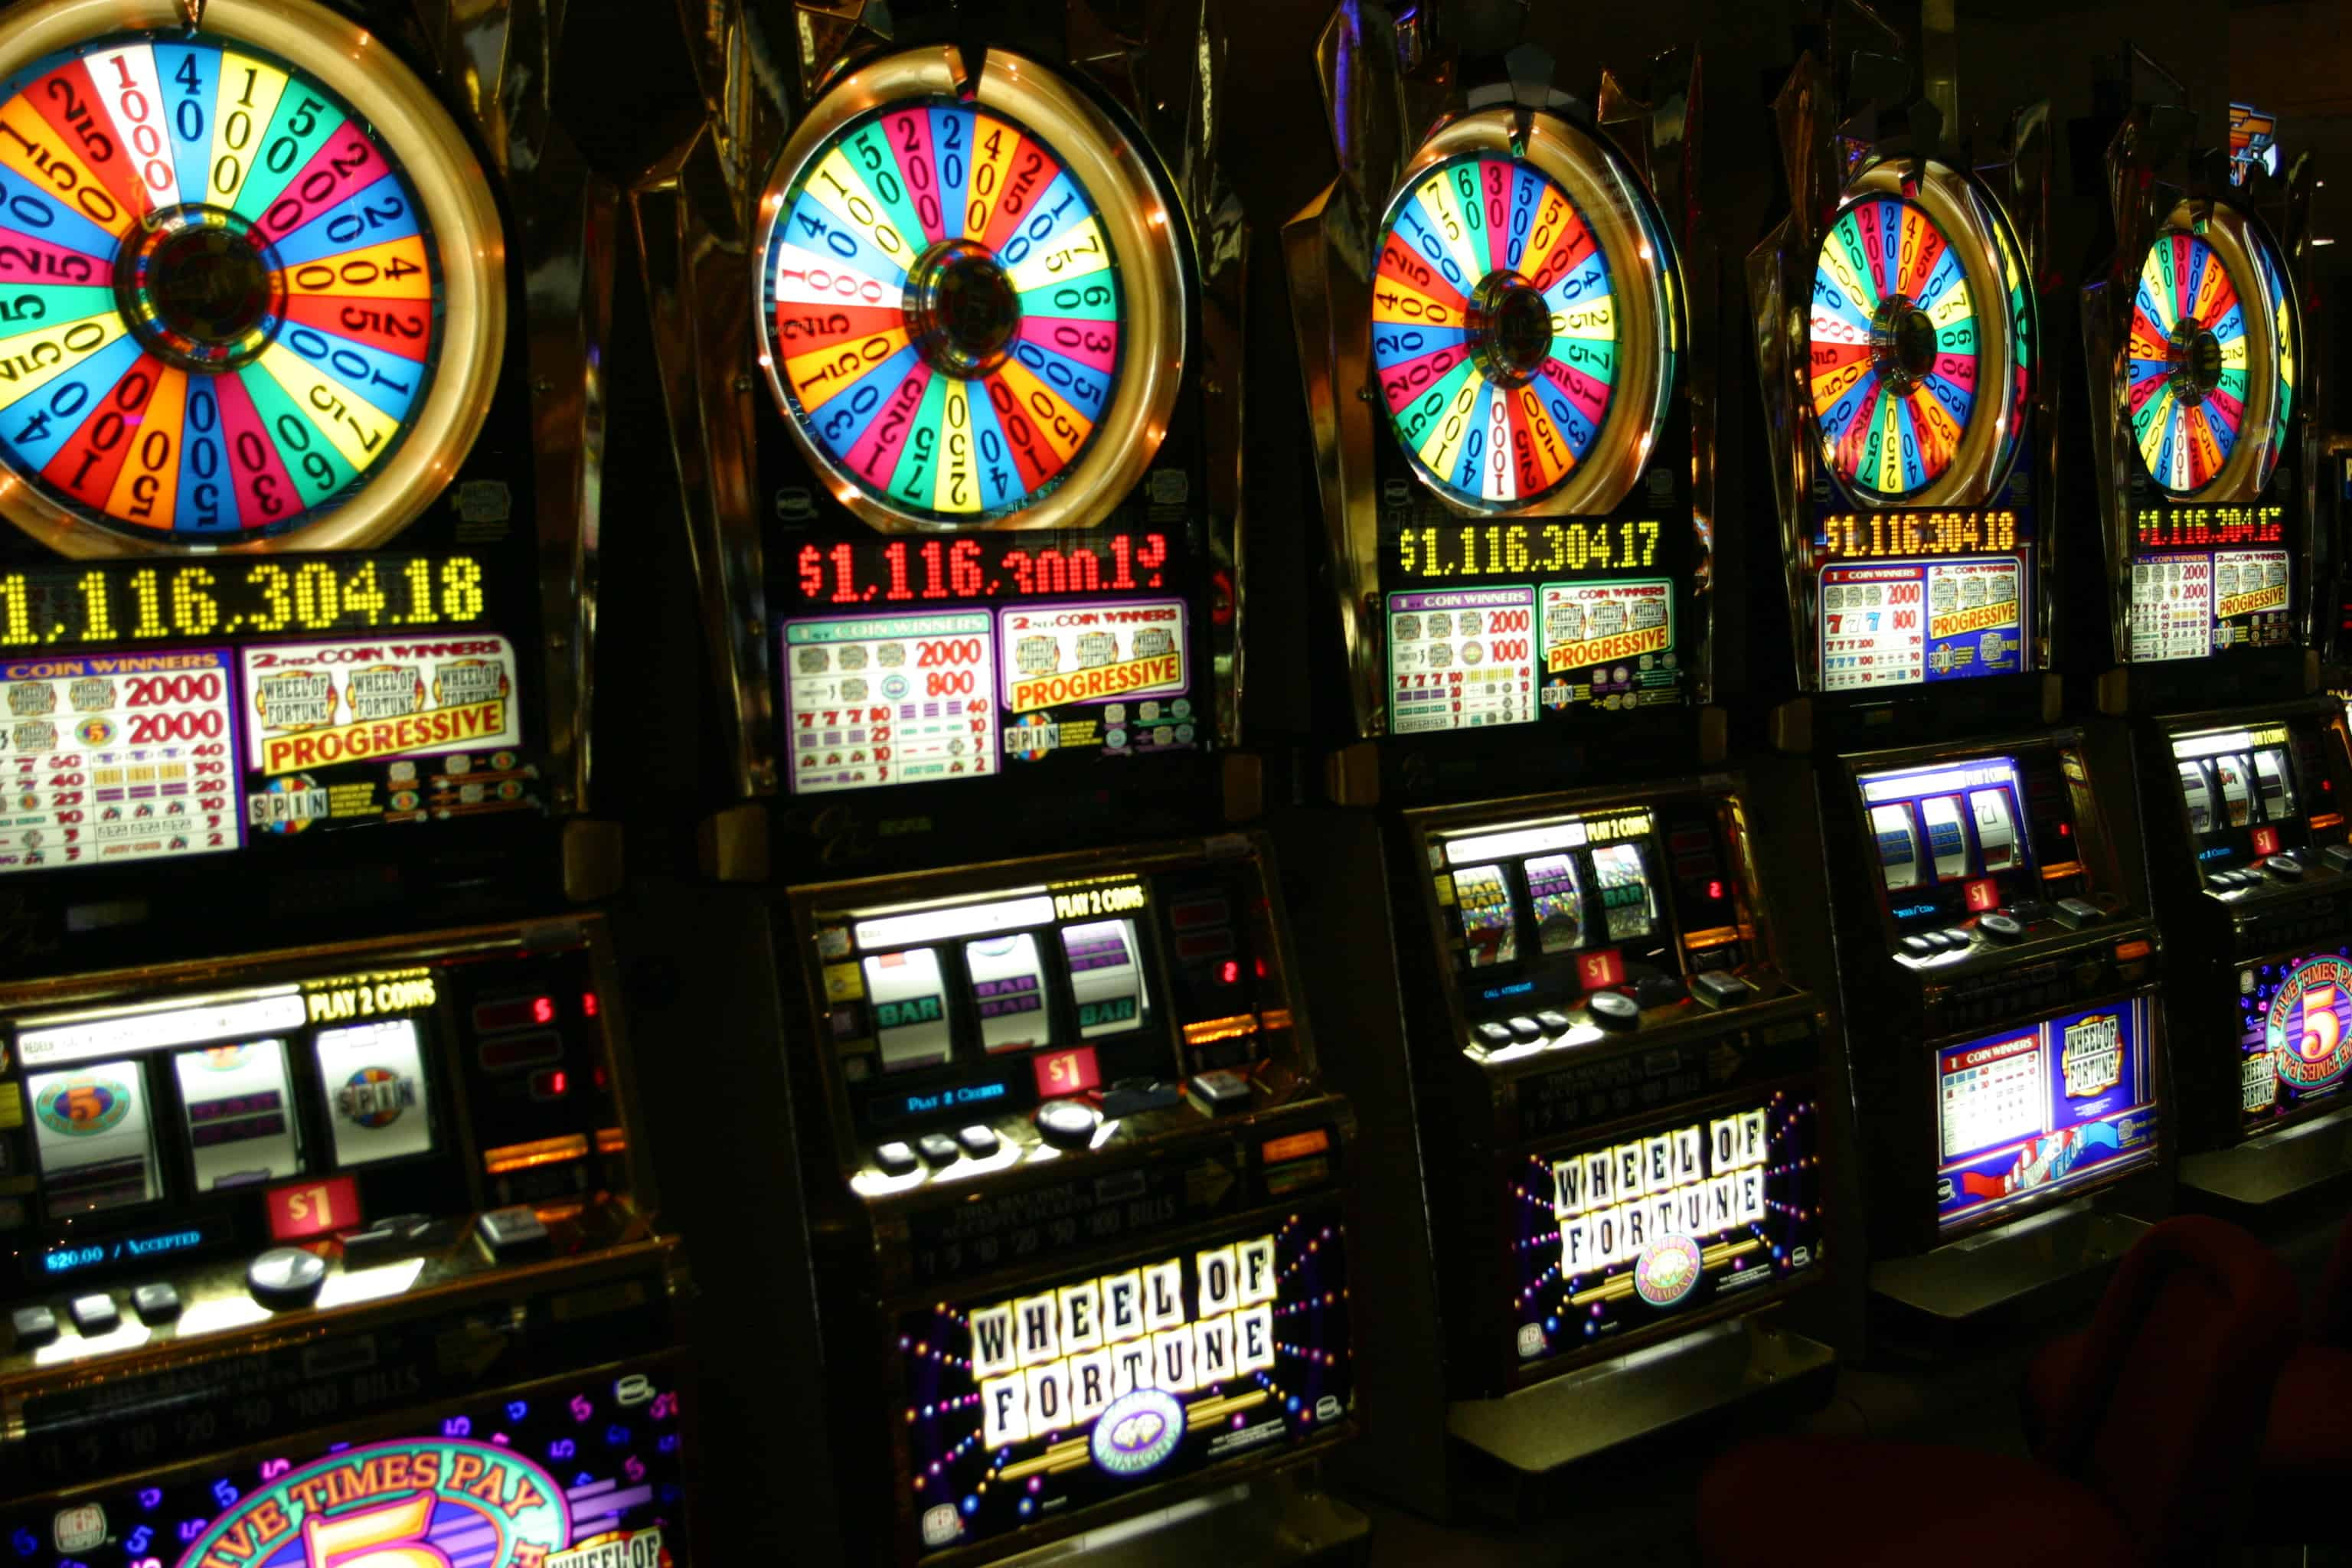 Slot game wheel of fortune